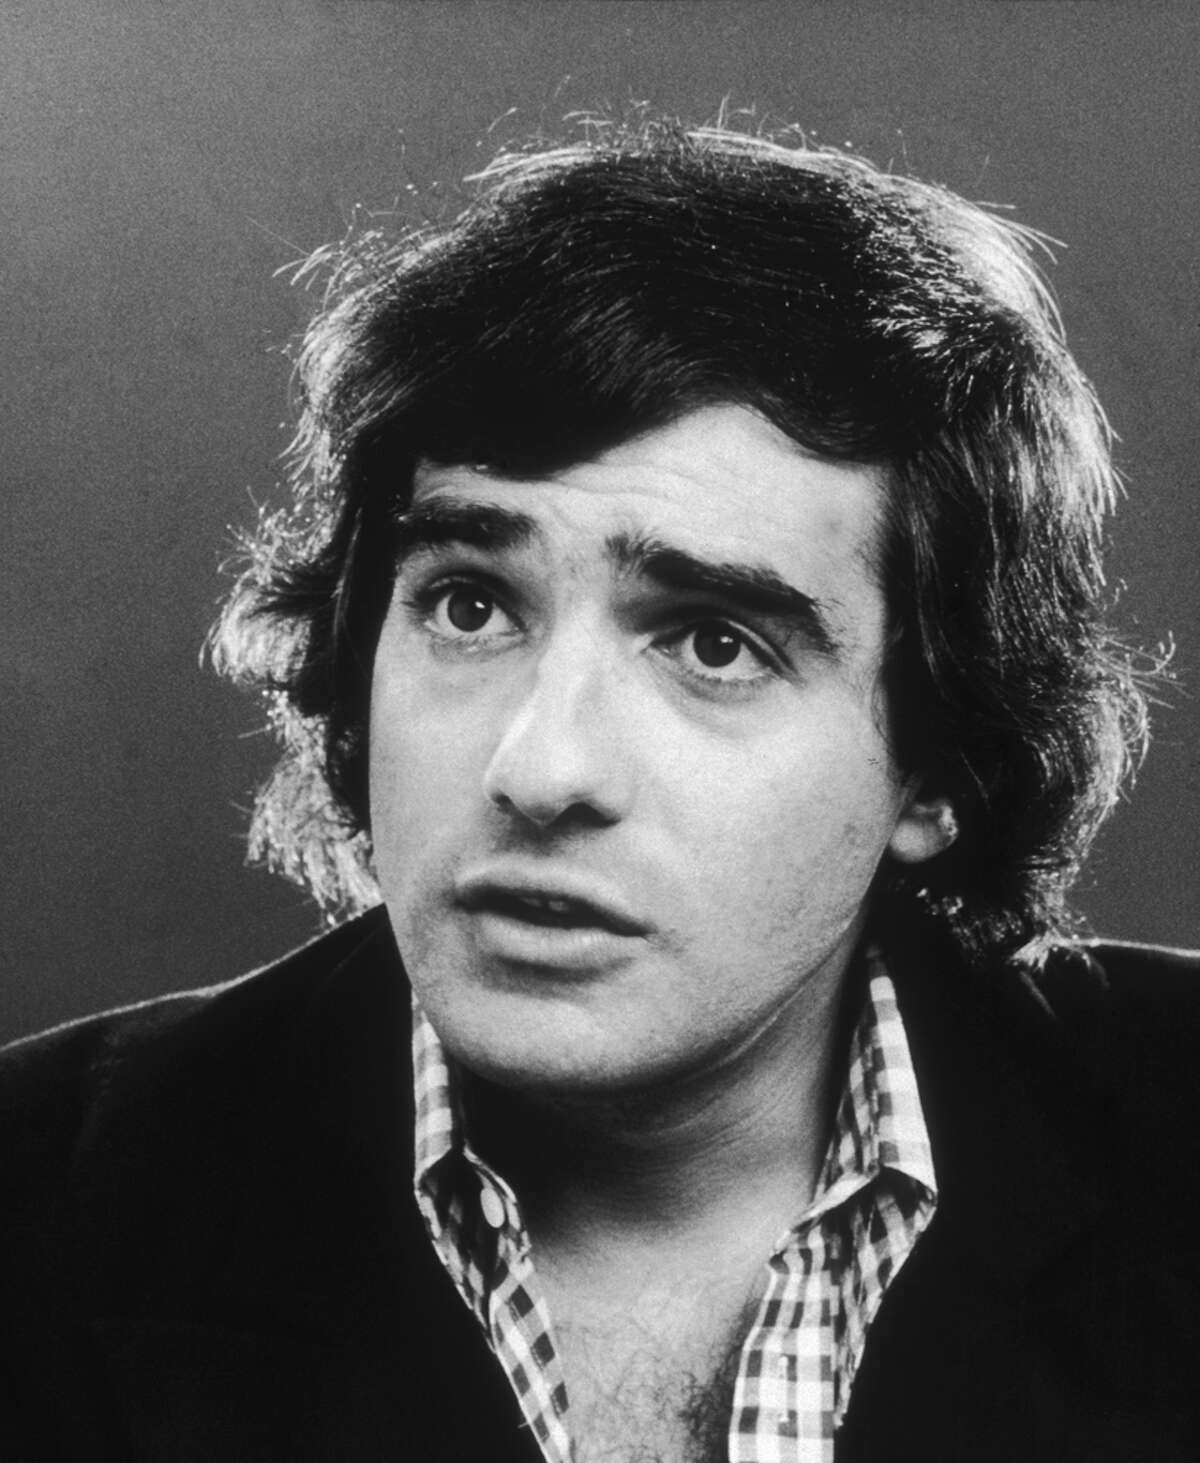 Born in New York City, Martin Scorsese once wanted to be a priest and had even entered a seminary. But he changed his mind and went to film school instead. He's pictured in 1973.